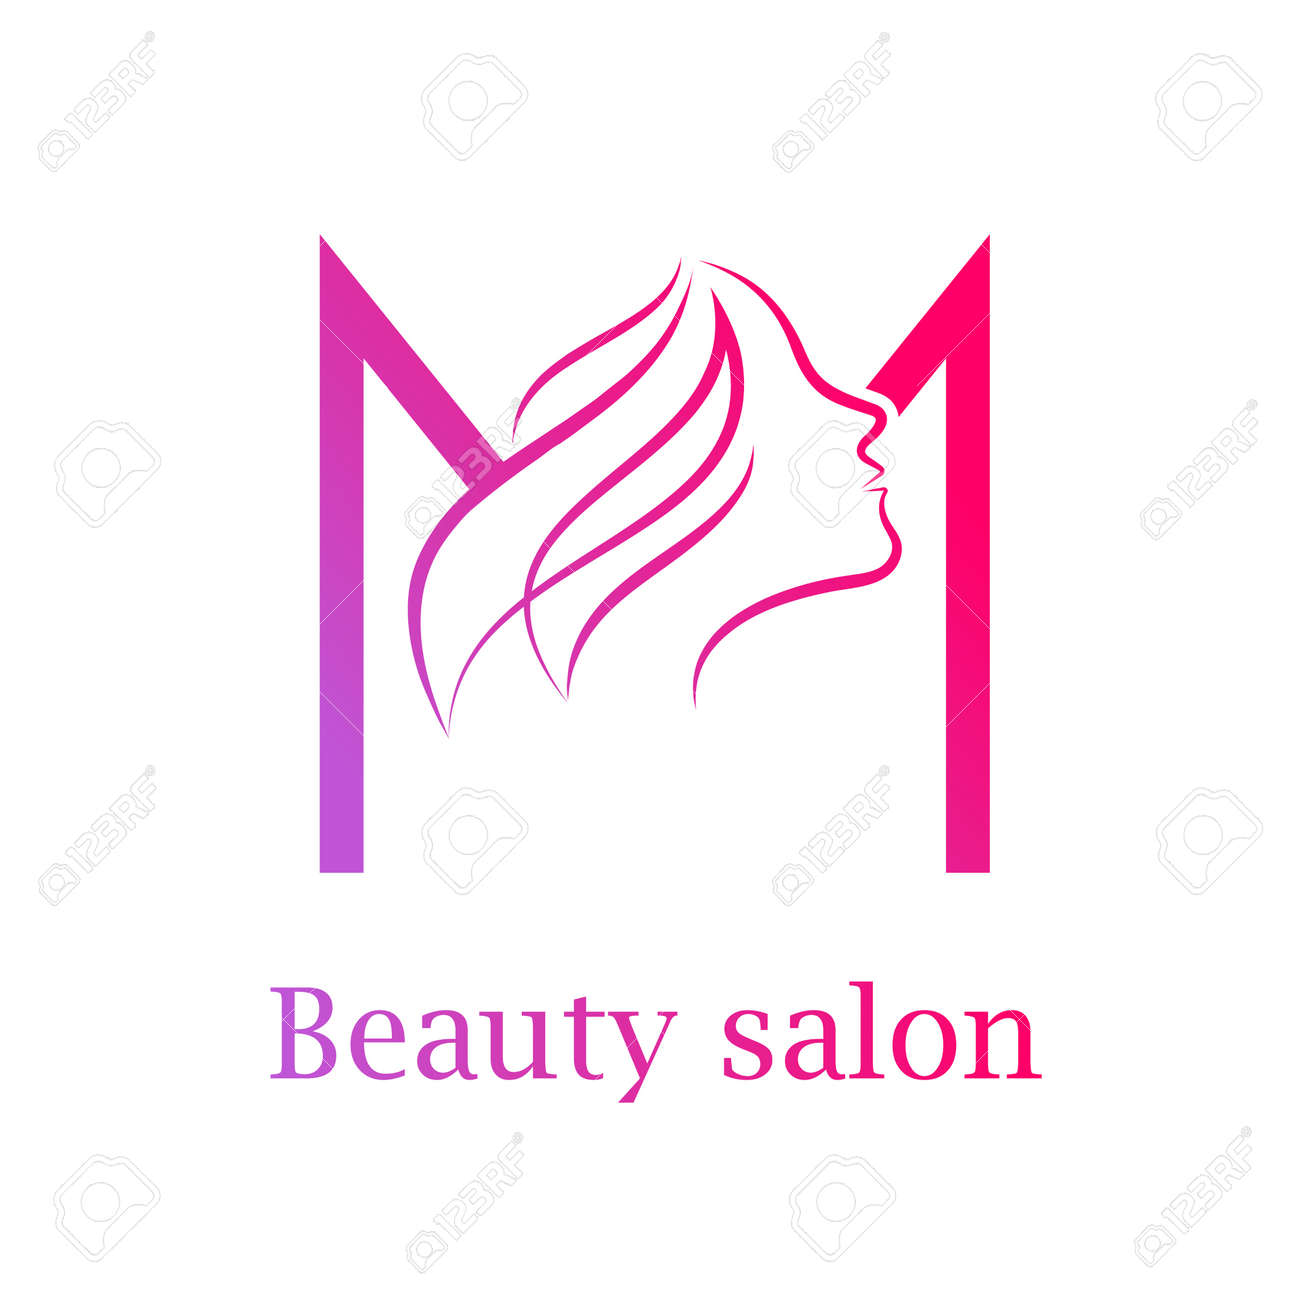 Abstract Letter M Logo Beauty Salon Logo Design Template Royalty Free Cliparts Vectors And Stock Illustration Image 84733906